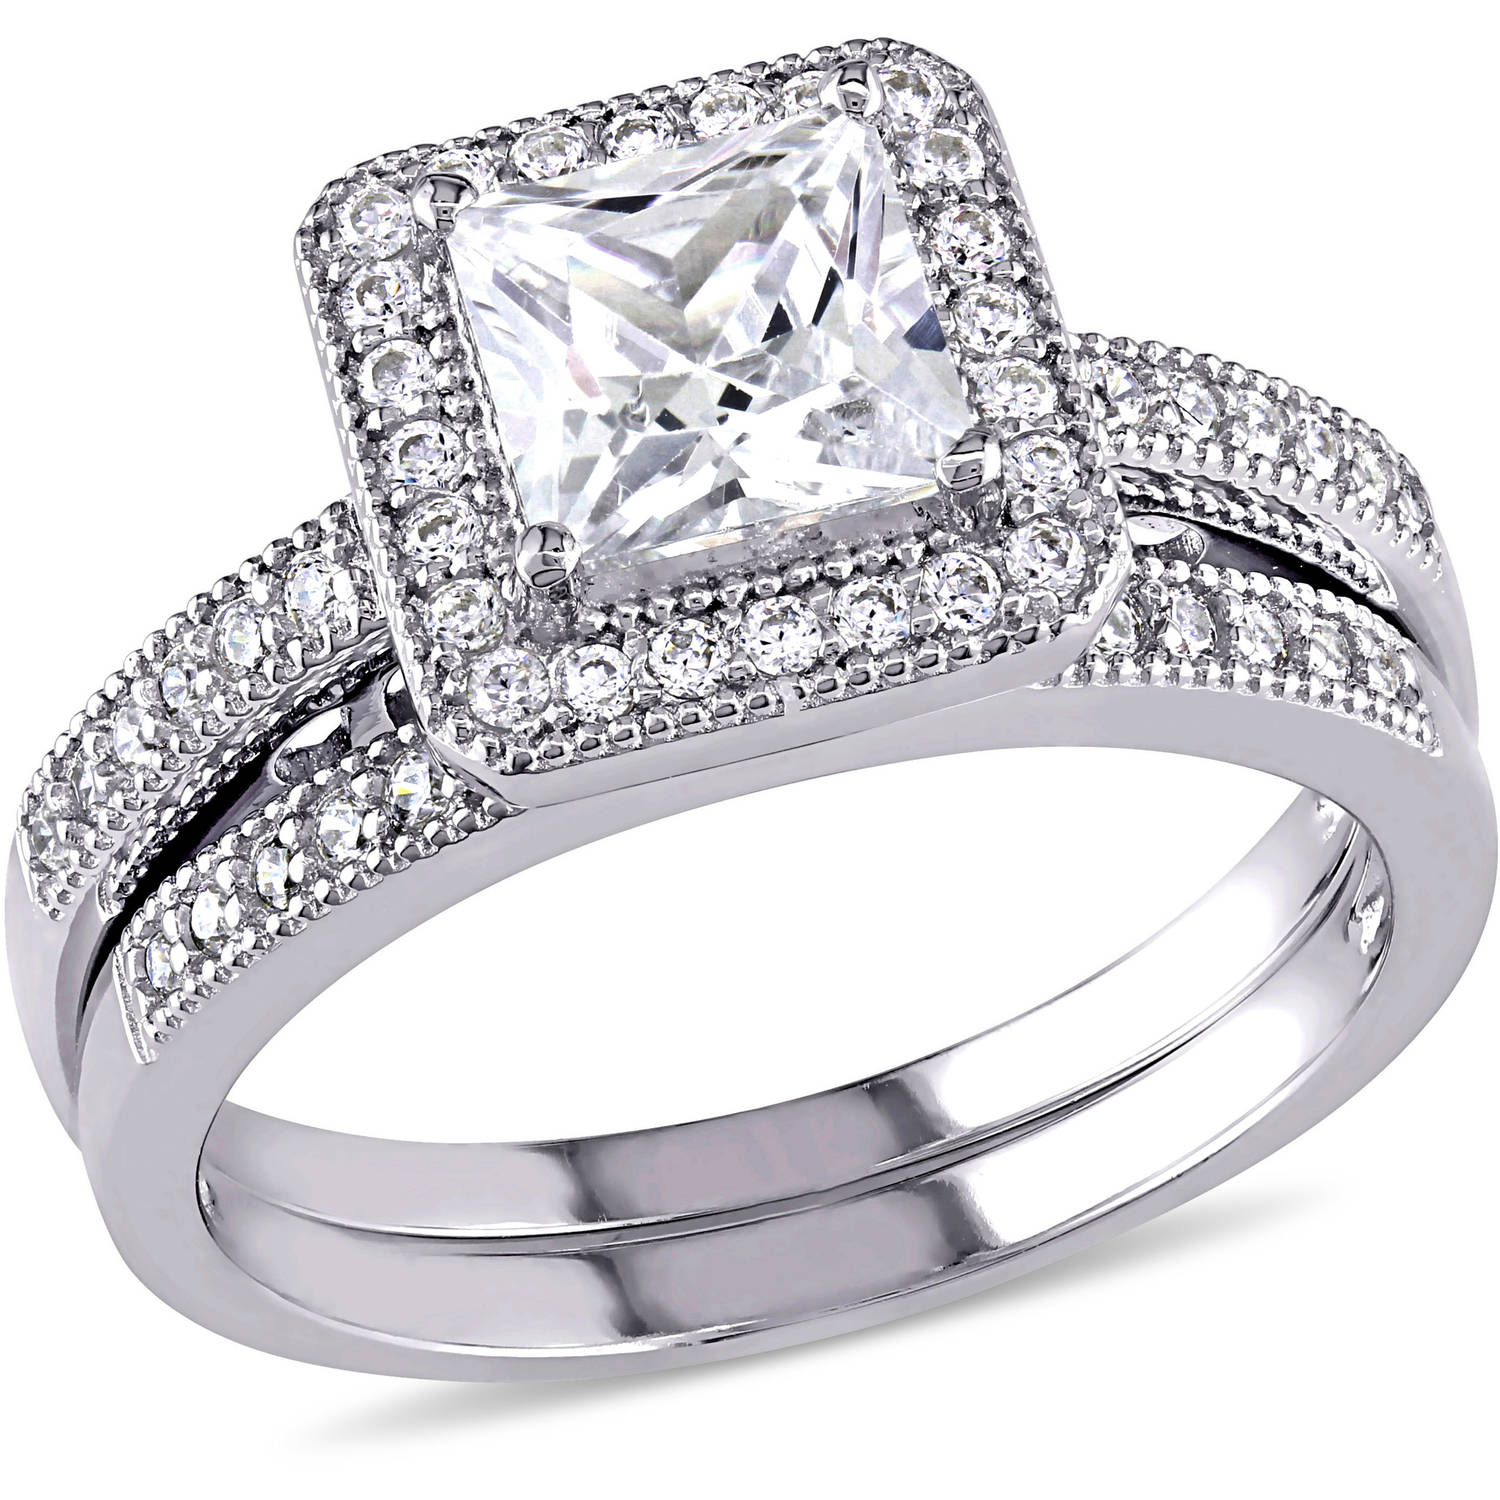 Miabella 2.34 Carat T.G.W. Princess and Round-Cut Cubic Zirconia Sterling Silver Halo Bridal Set by Generic